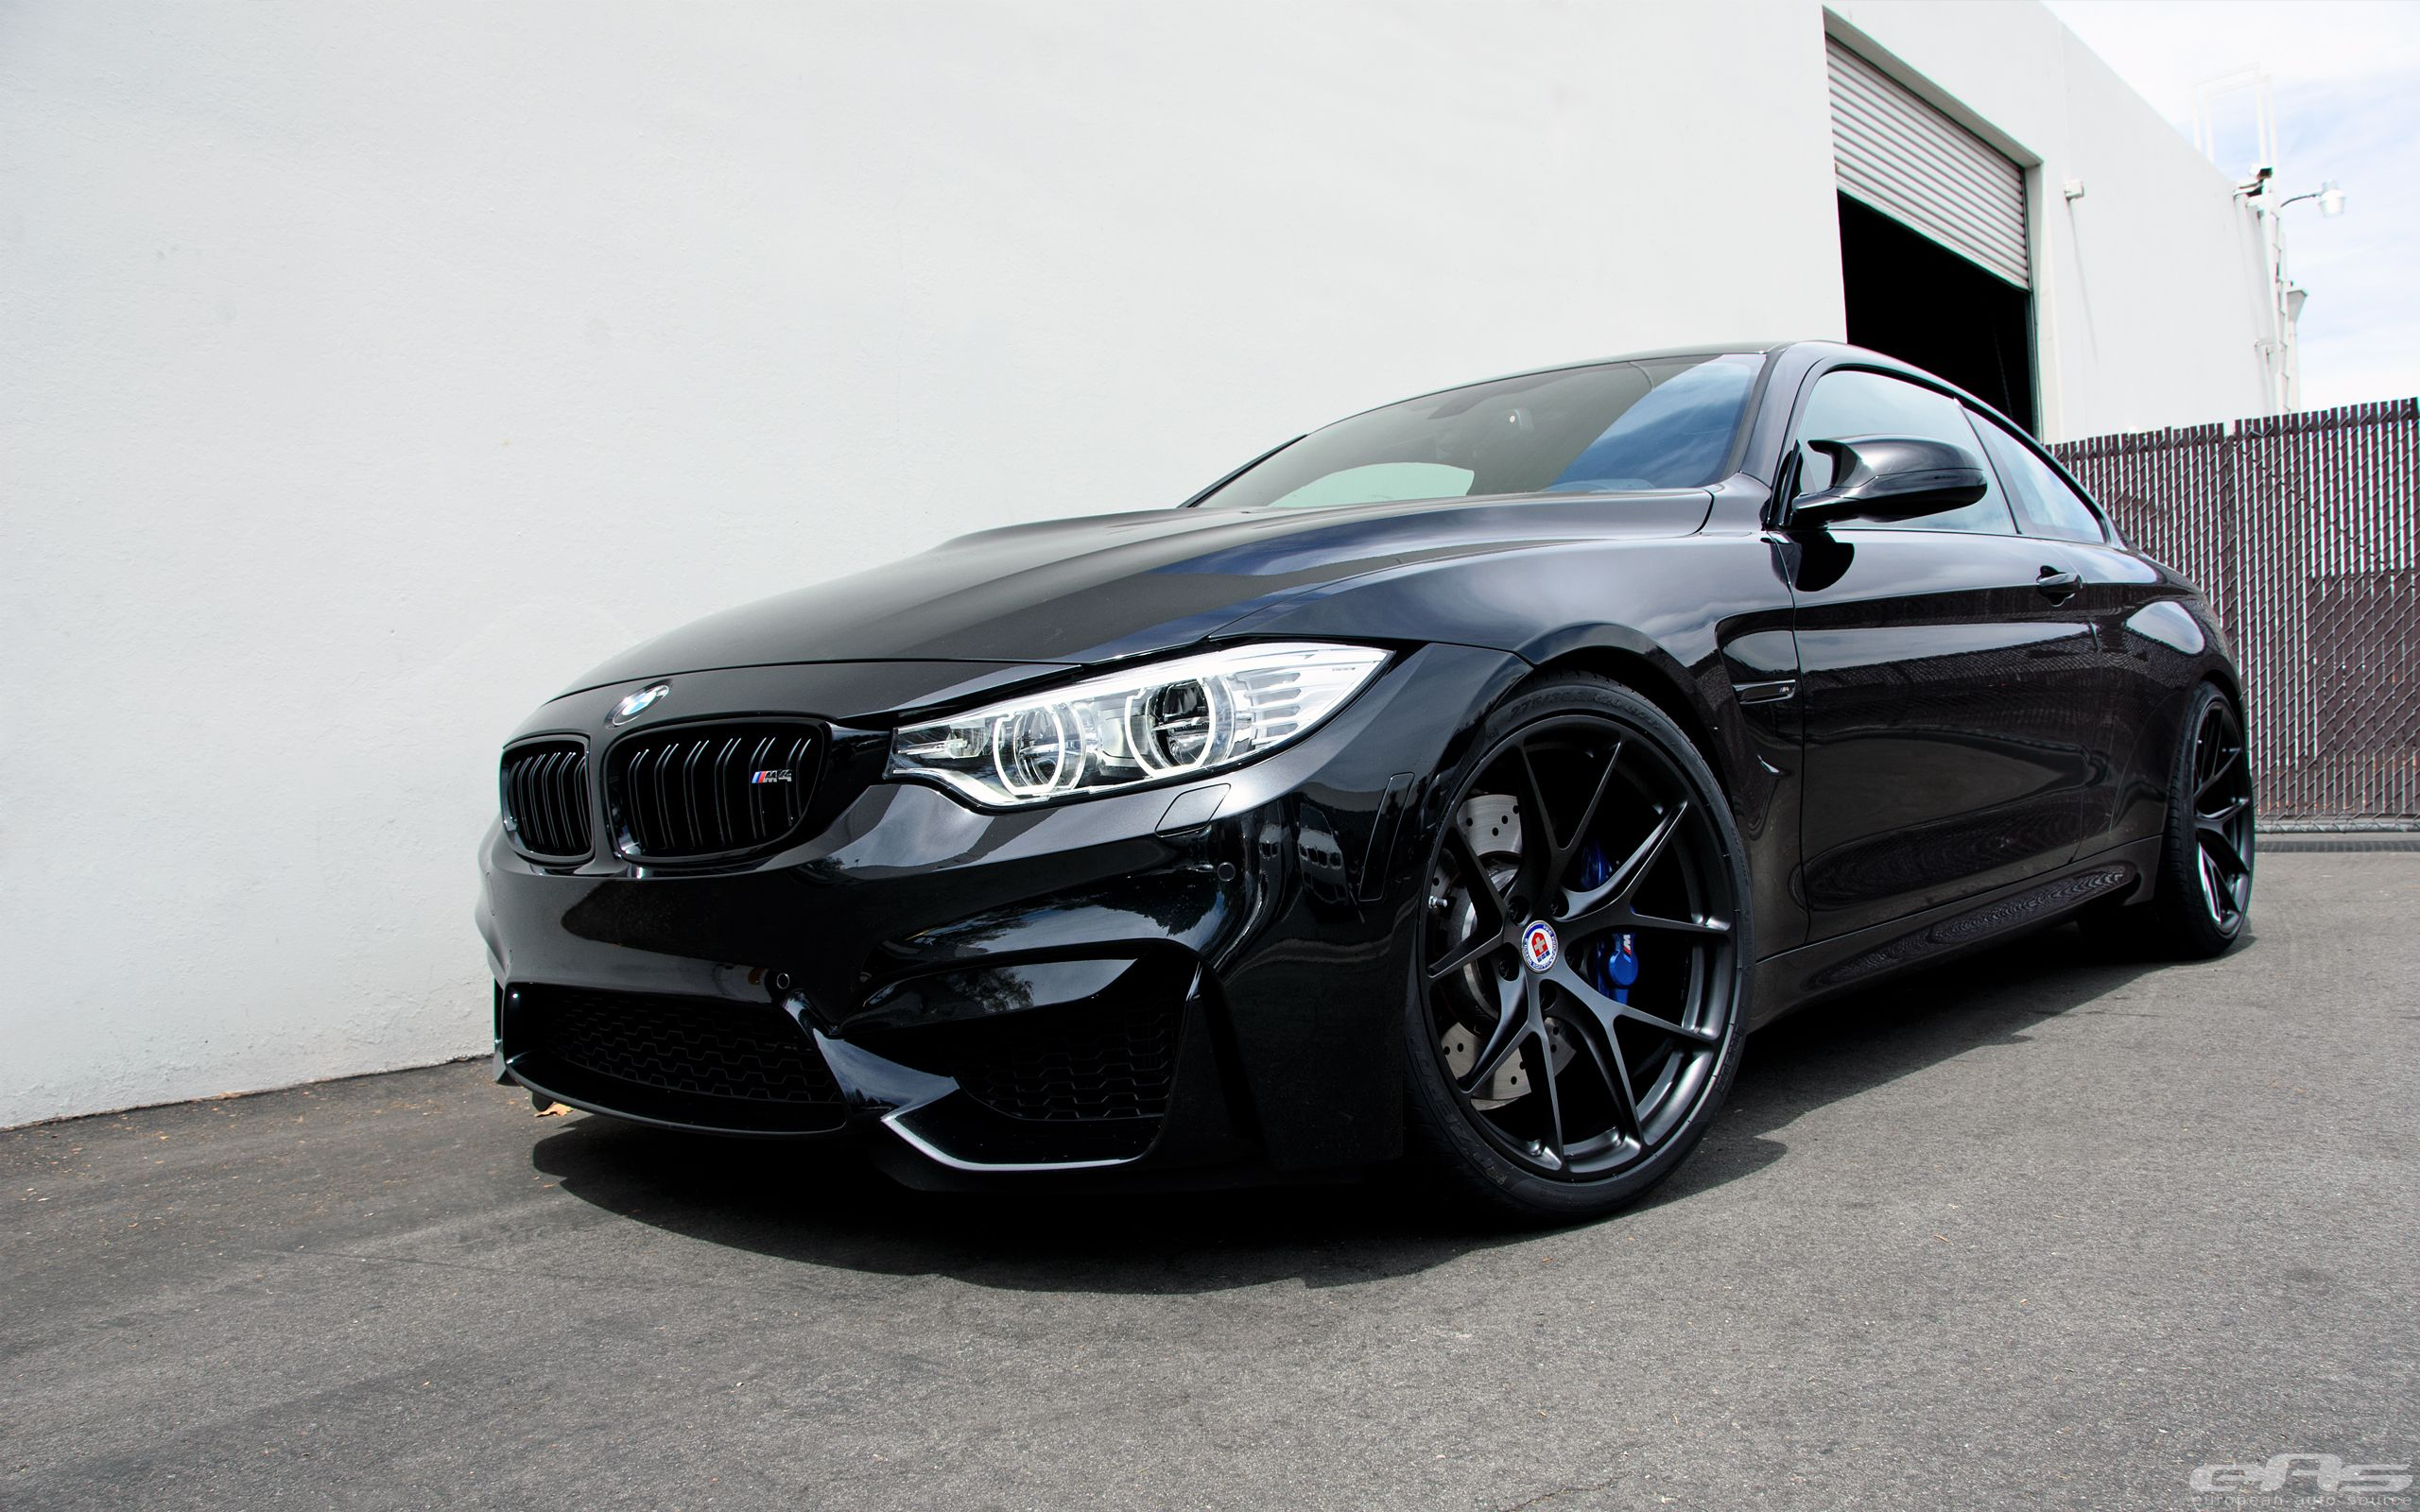 2012 bmw 6 series 650i coupe black sapphire metallic color black - 1 18 F10 Bmw M5 2012 Sapphire Black Modified Tuning Umbau Code 3 F10 View More On The Link Http Www Zeppy Io Product Gb 2 201569